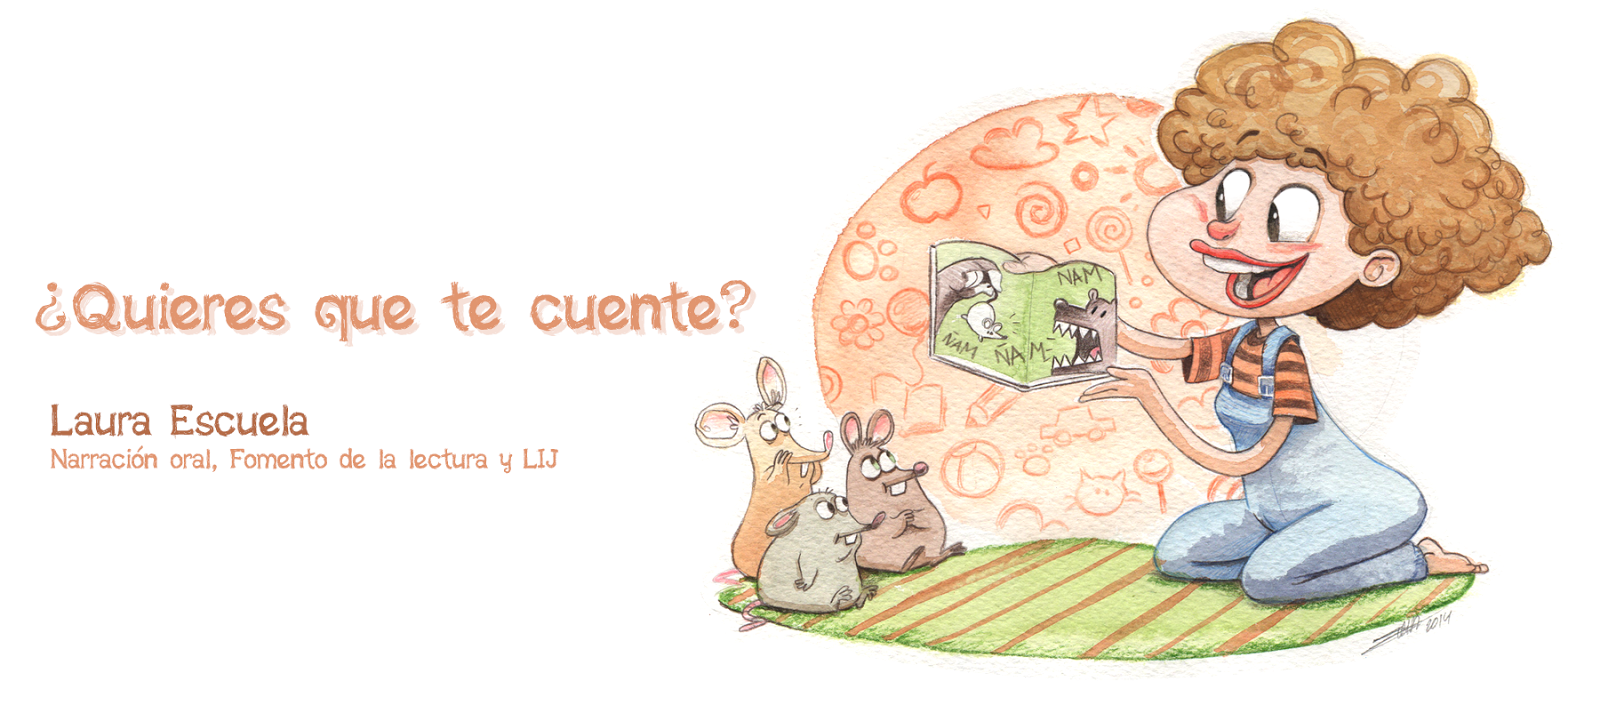 ¿QUIERES QUE TE CUENTE?